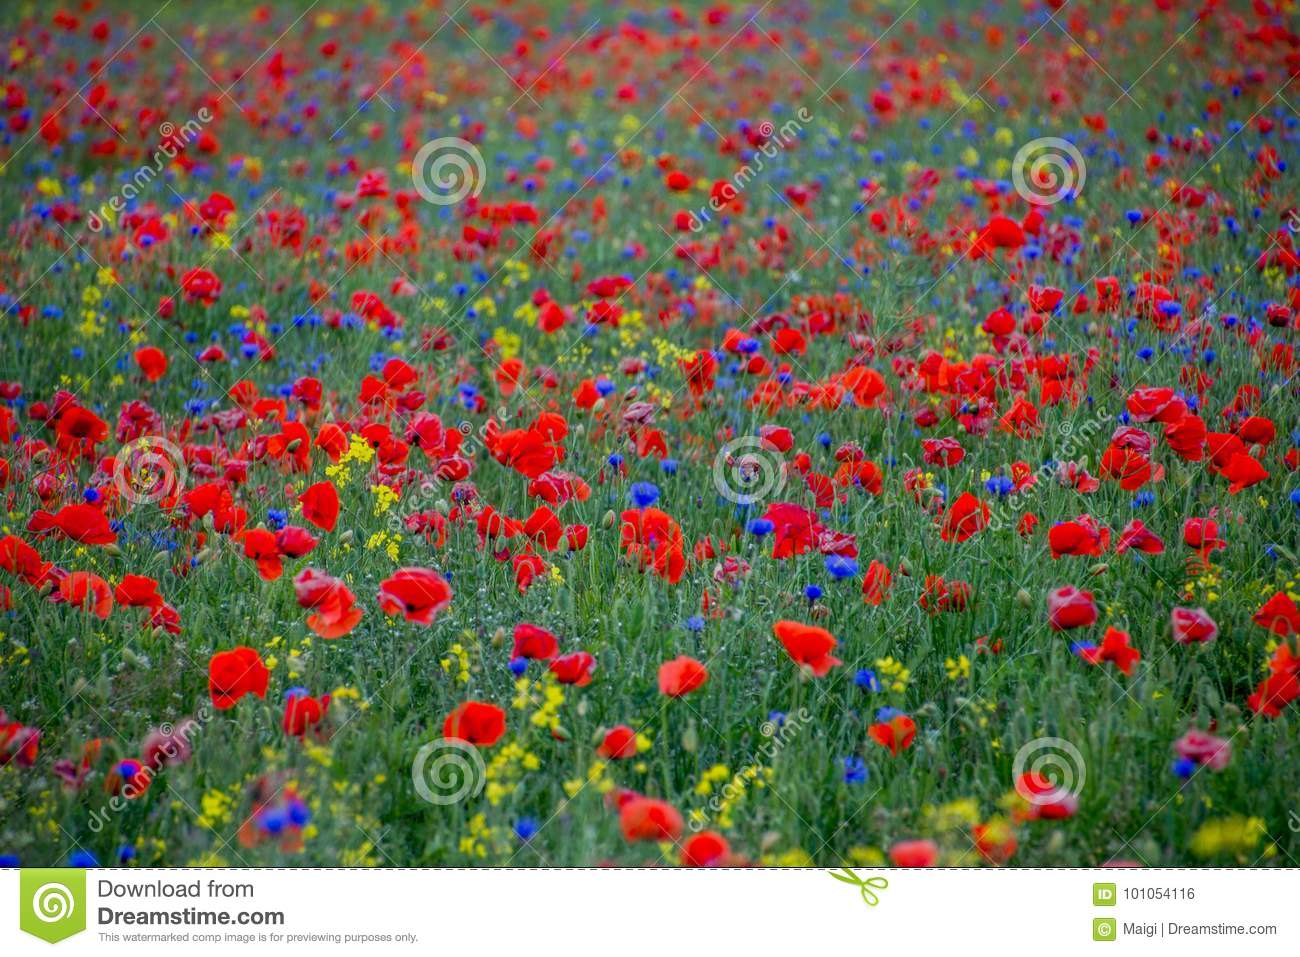 Download Red Poppies And Blue Cornflowers Stock Photo - Image of plants, blue: 101054116